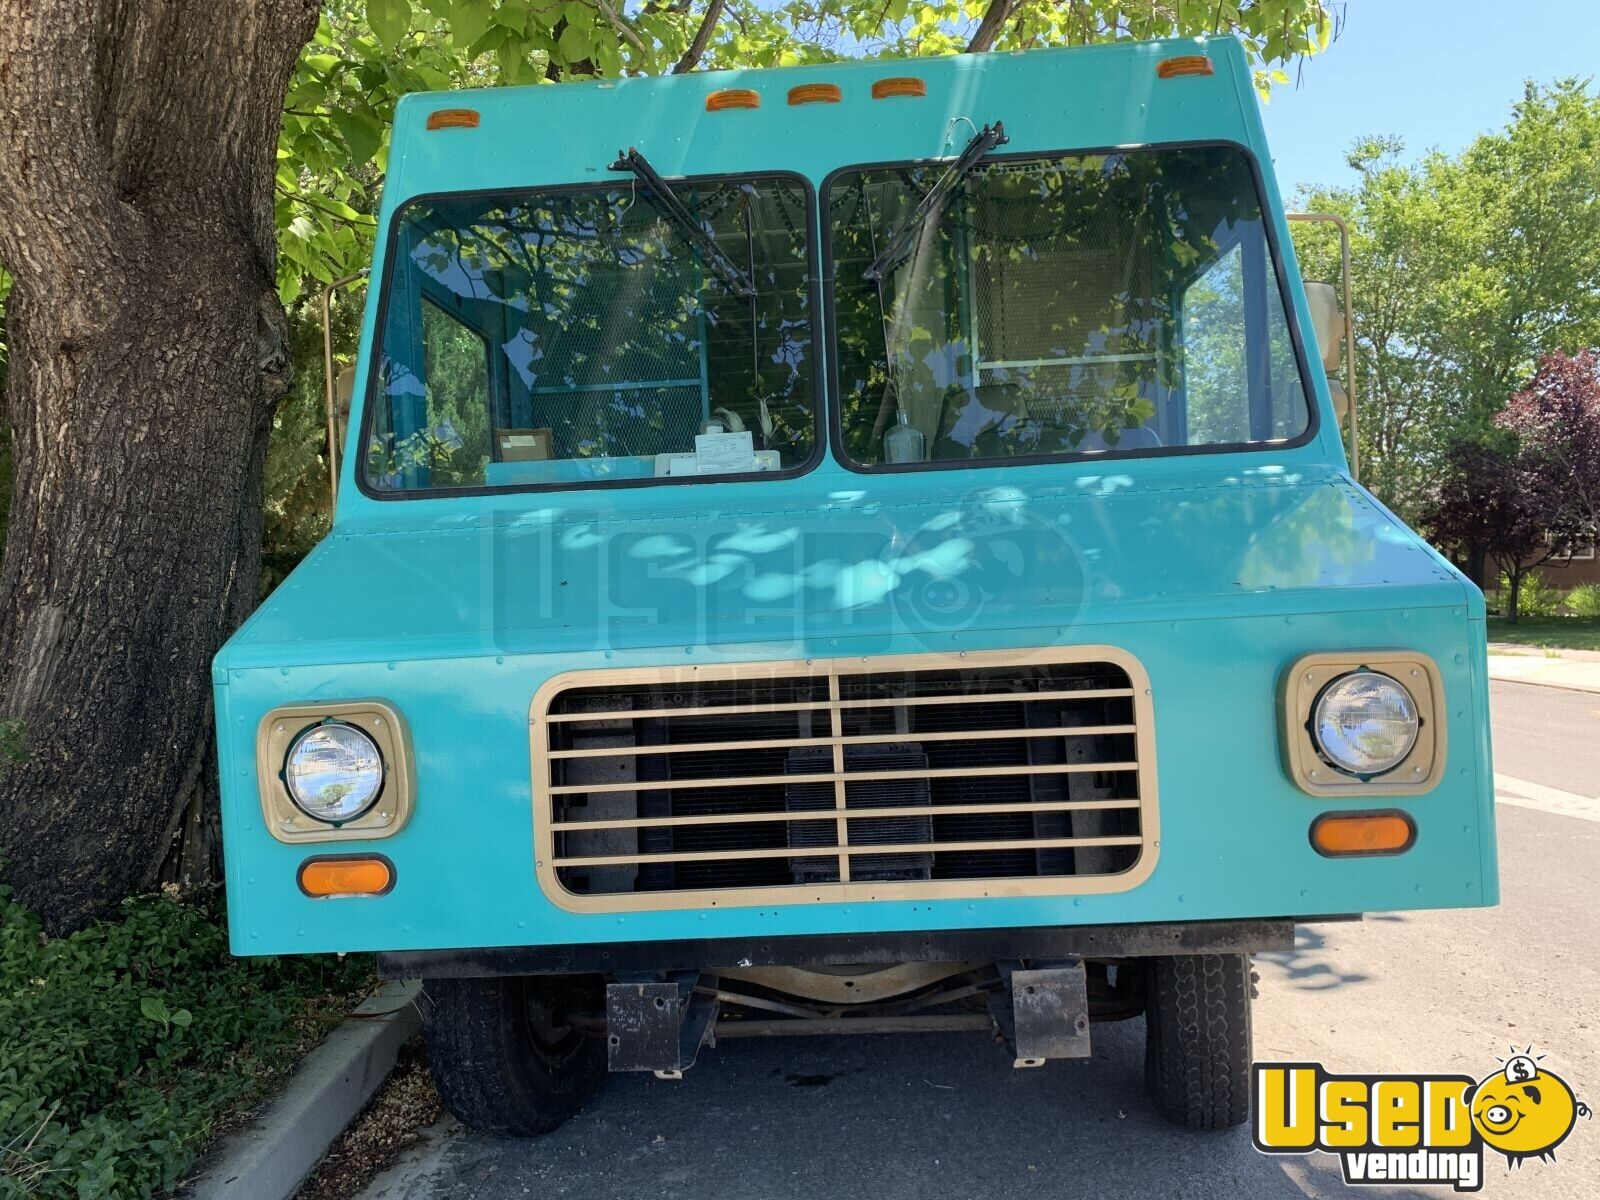 1995 Chevrolet Mobile Boutique Truck Cabinets Nevada Gas Engine for Sale - 4